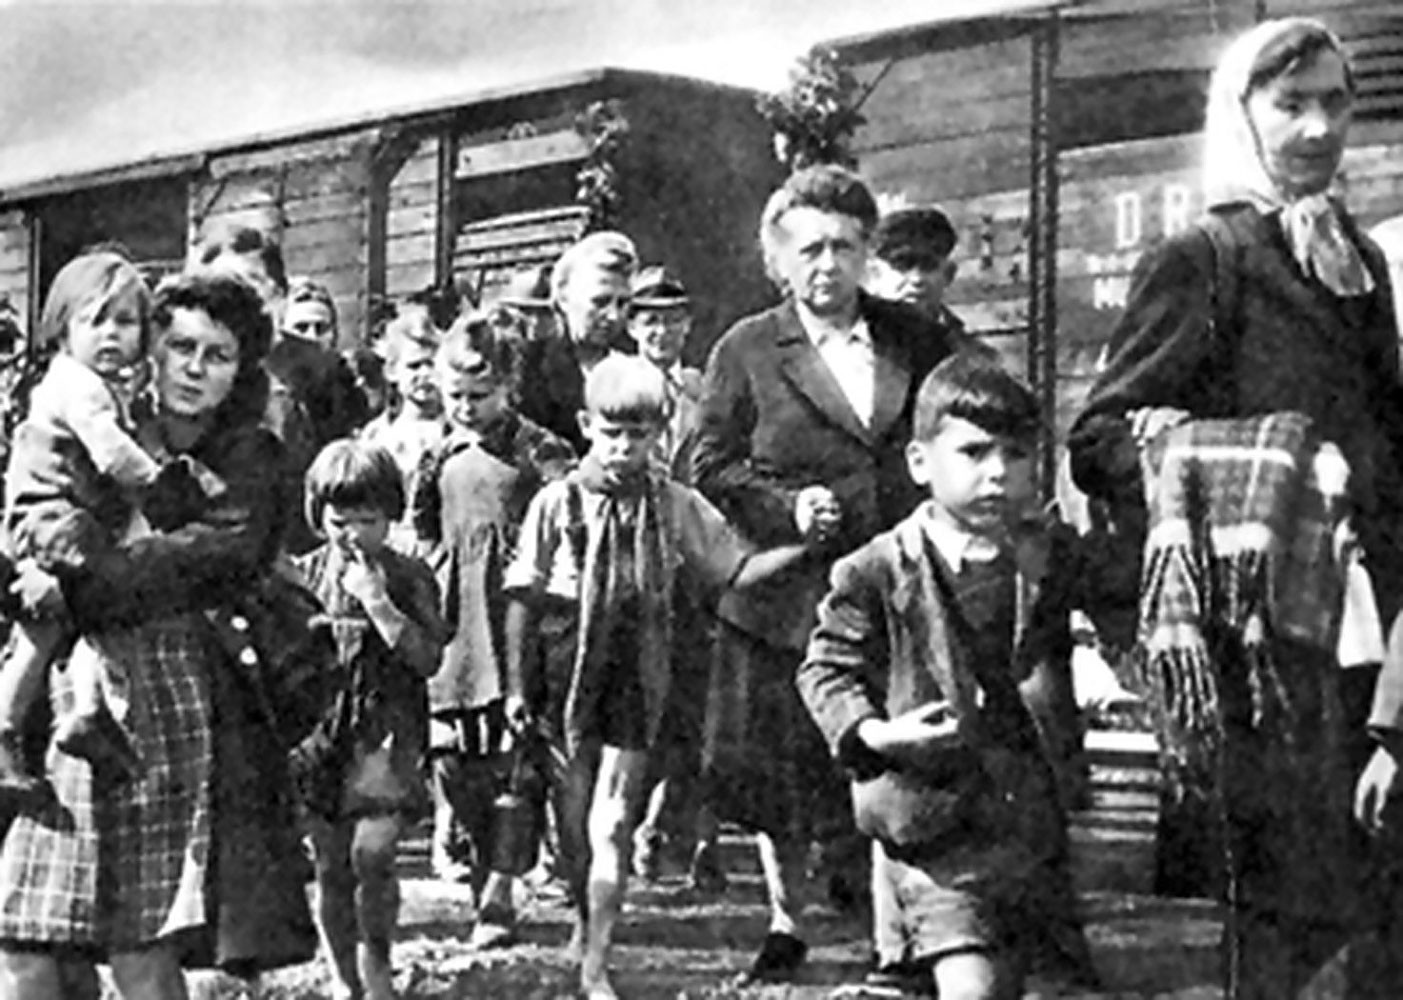 Displaced Persons Act